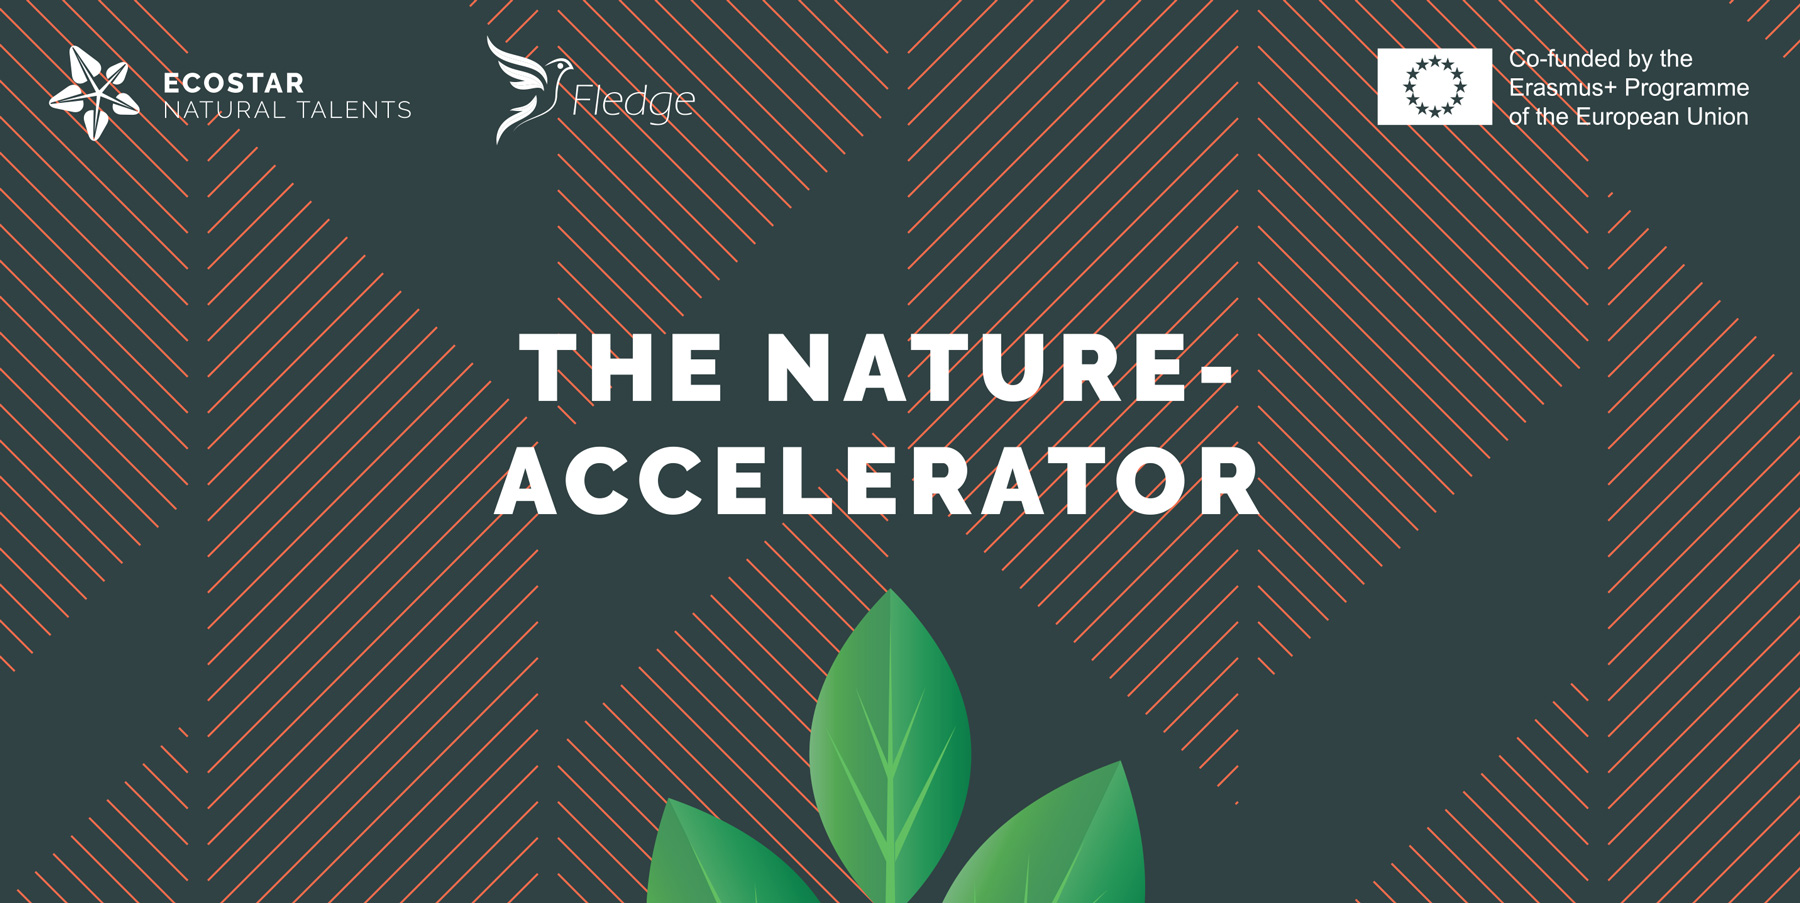 The Nature-Accelerator developed by ECOSTAR